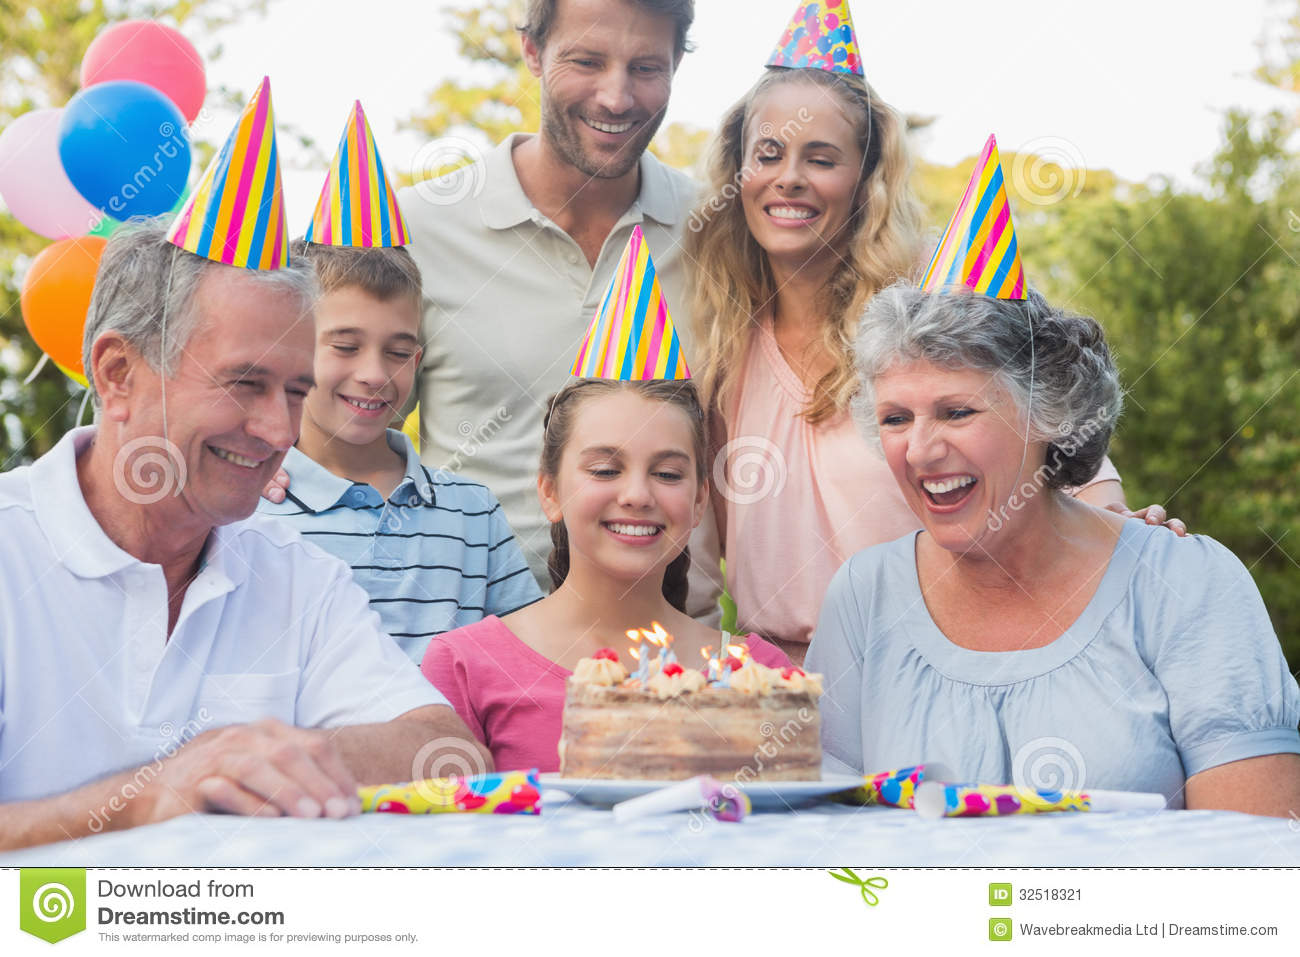 celebrating my grandfather birthday 90th birthday wishes find the best 90th birthday quotes, greetings and wishes  congratulations on the celebration of your 90th birthday may your days be.